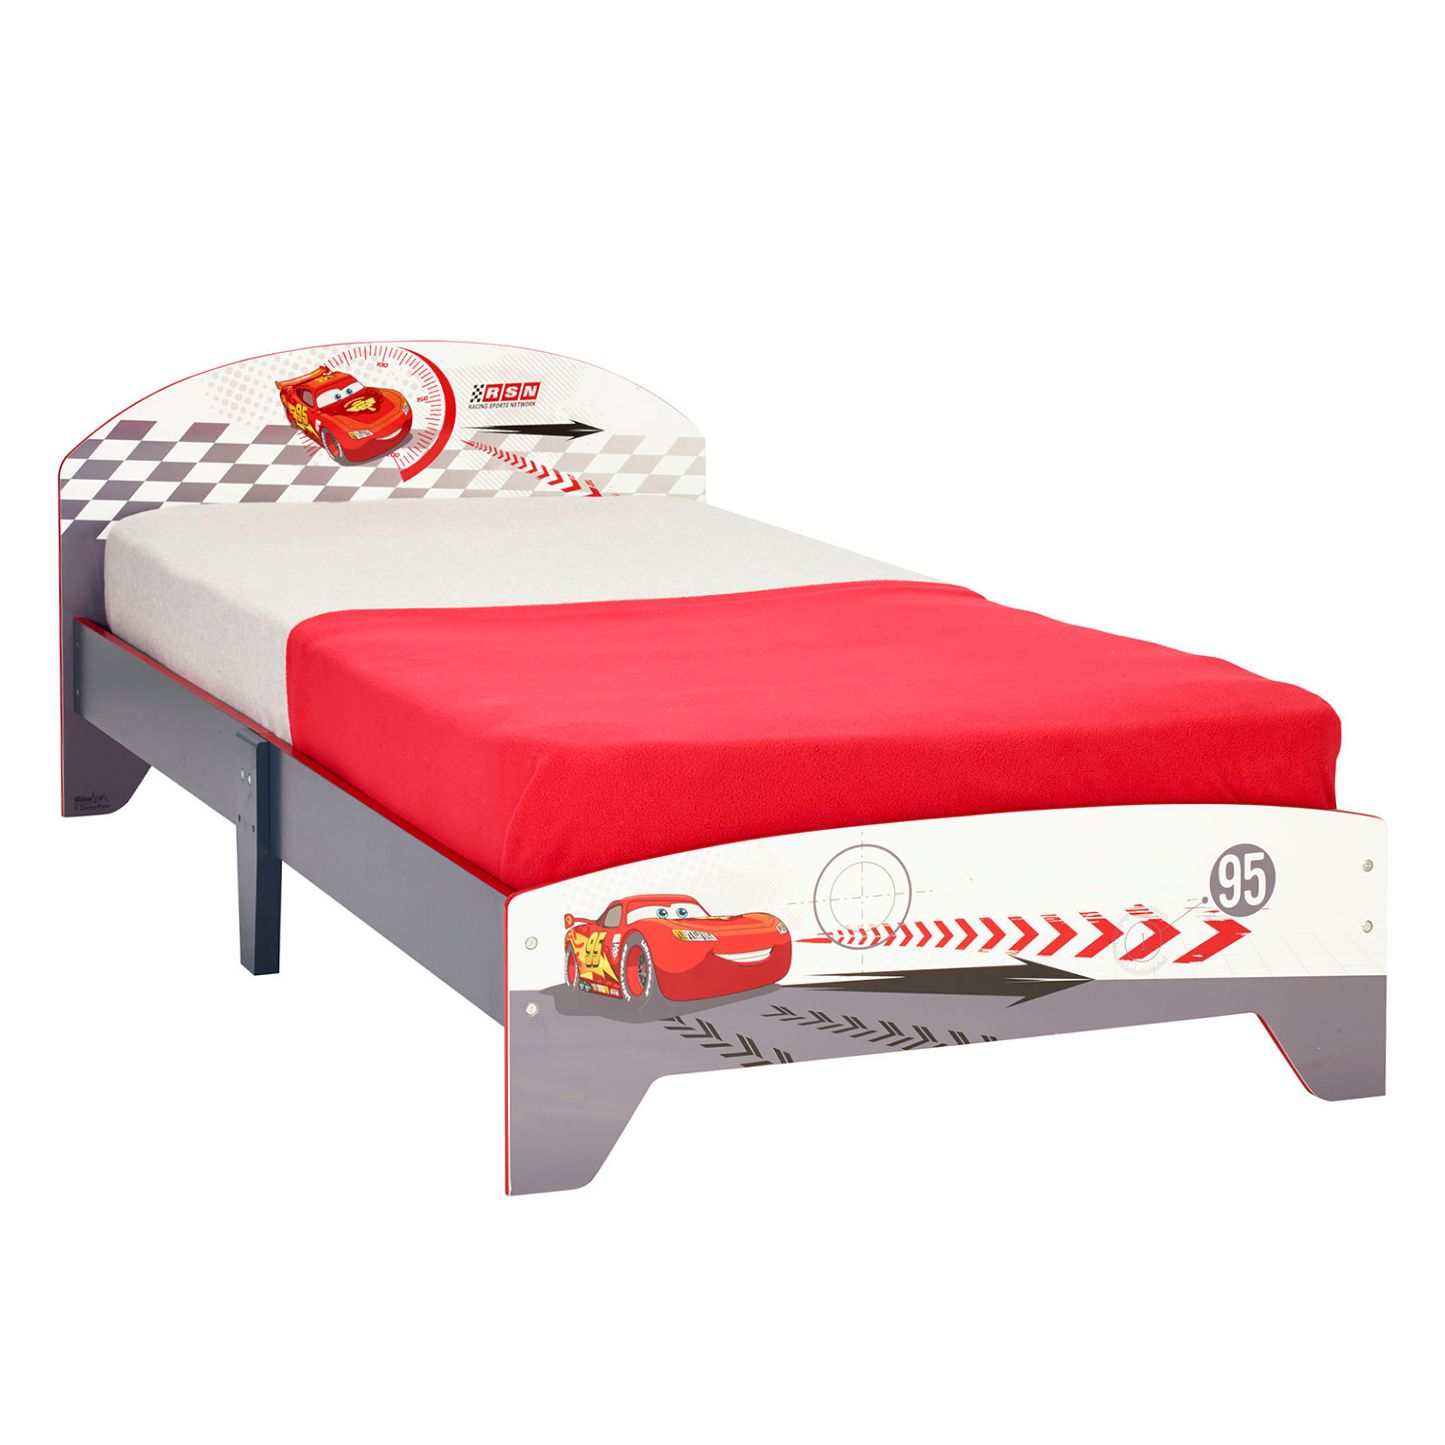 Juniorbed Cars2, Worlds Apart